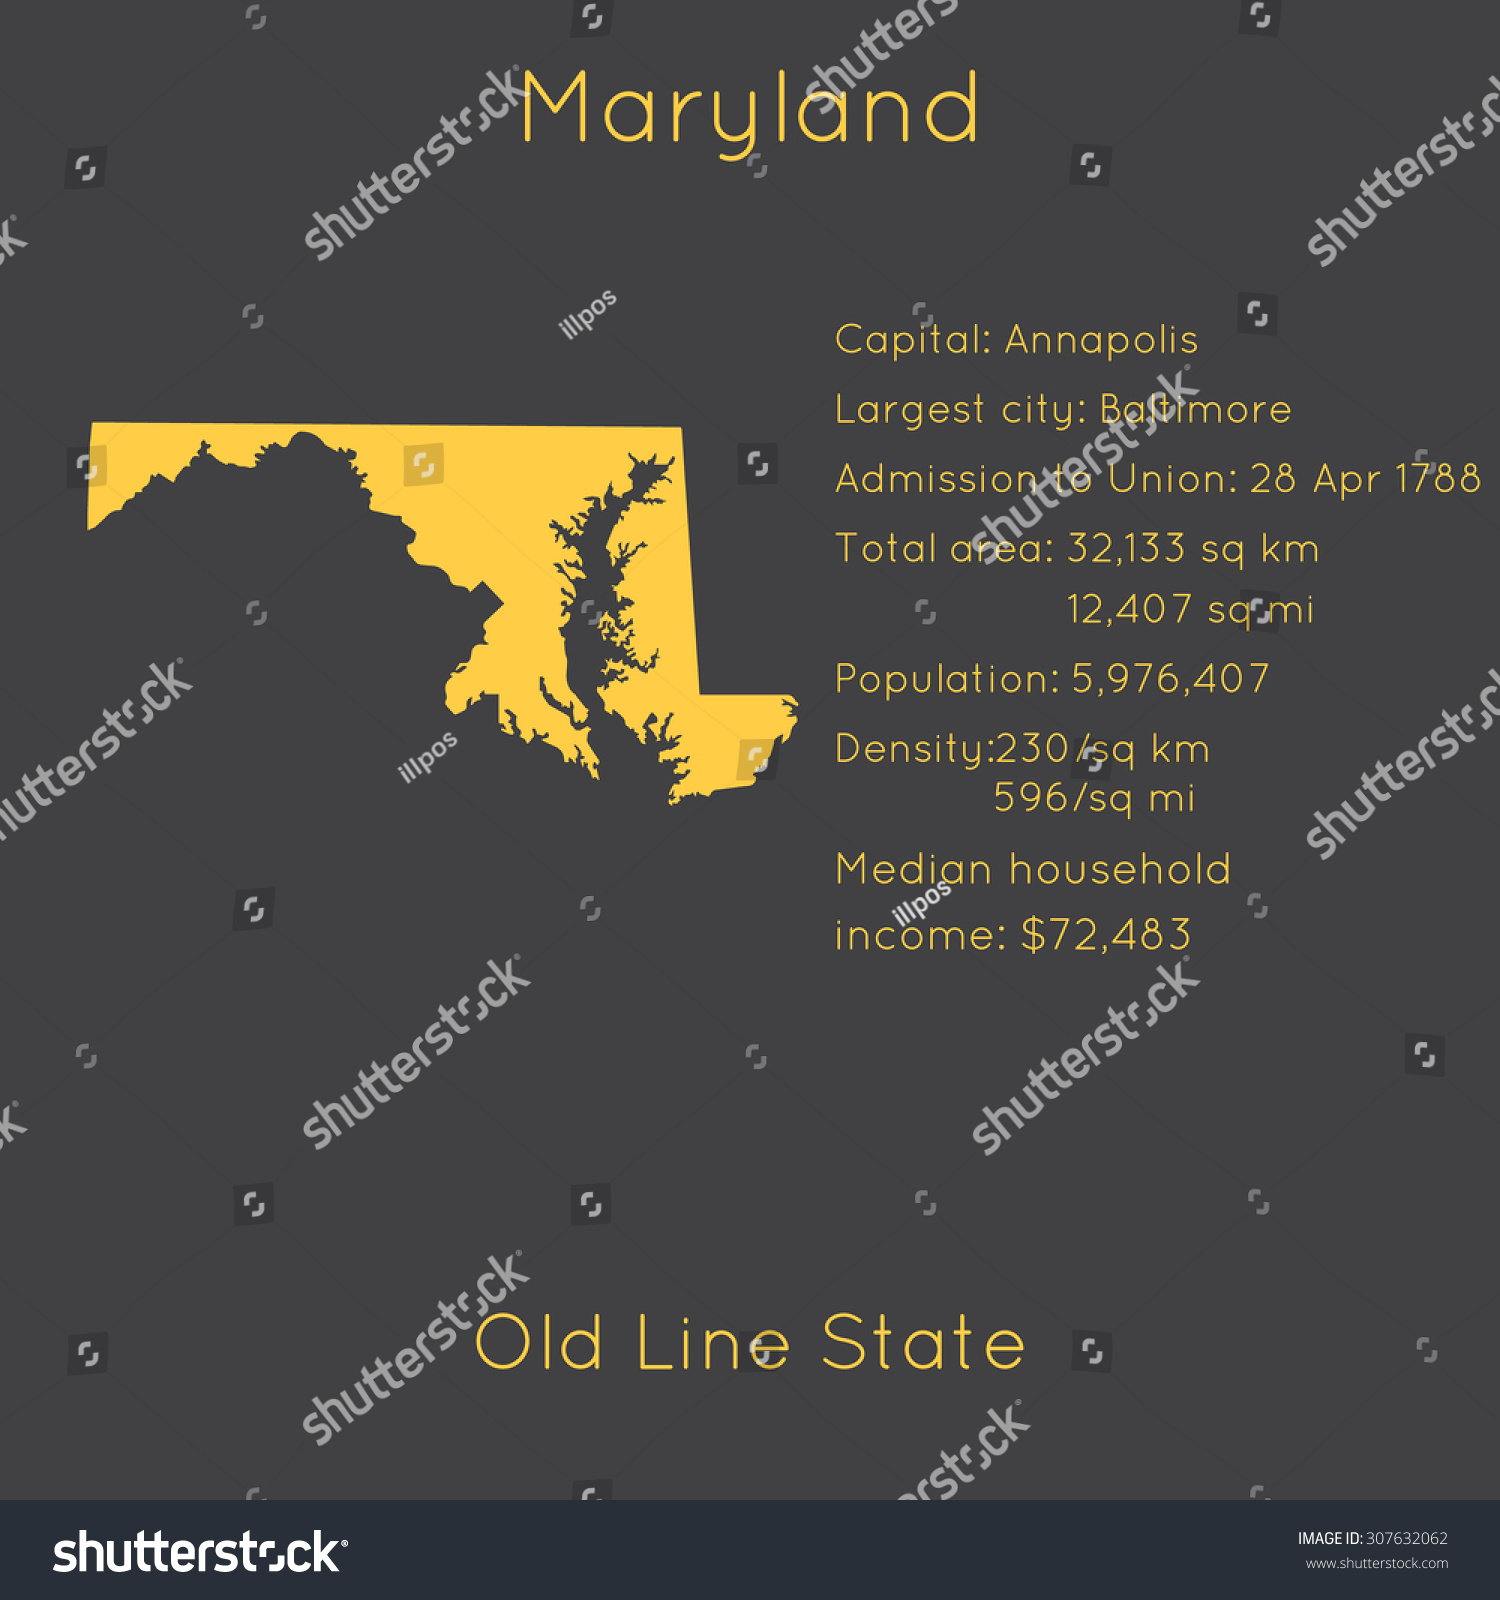 Enchanting Maryland Id Template Image - Examples Professional Resume ...